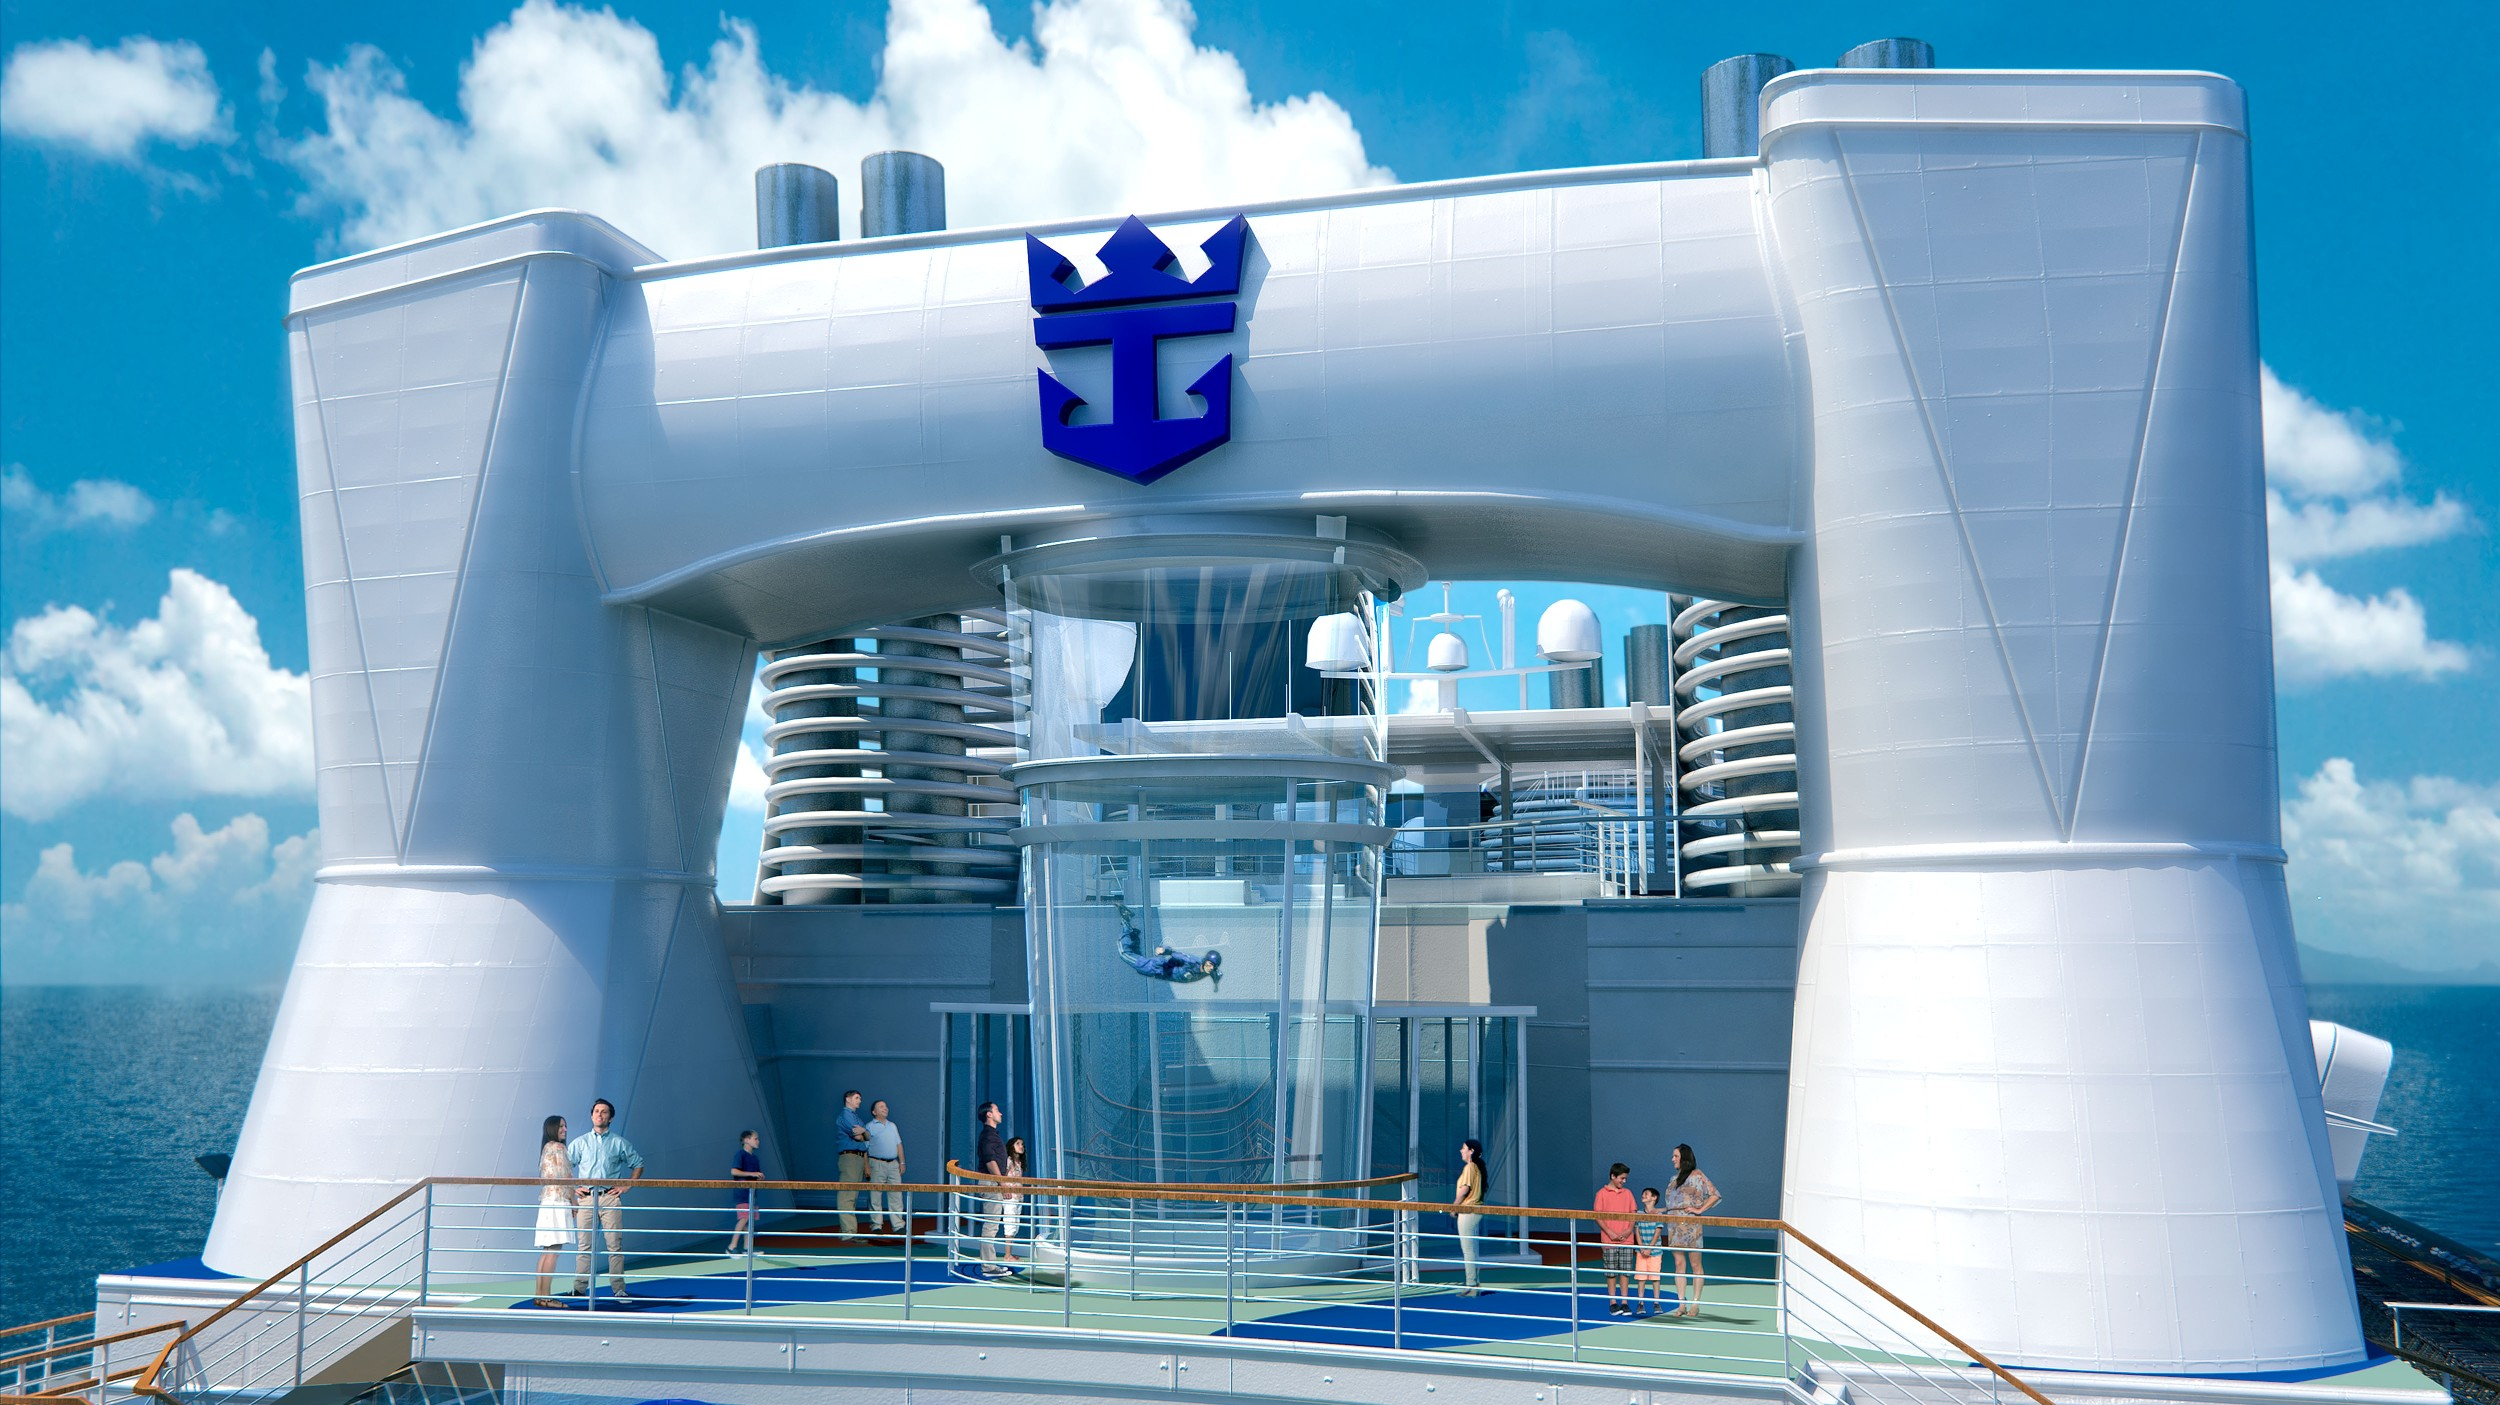 Simulador de voo do navio Quantum of the Seas (foto: Royal Caribbean International / Divulgação)